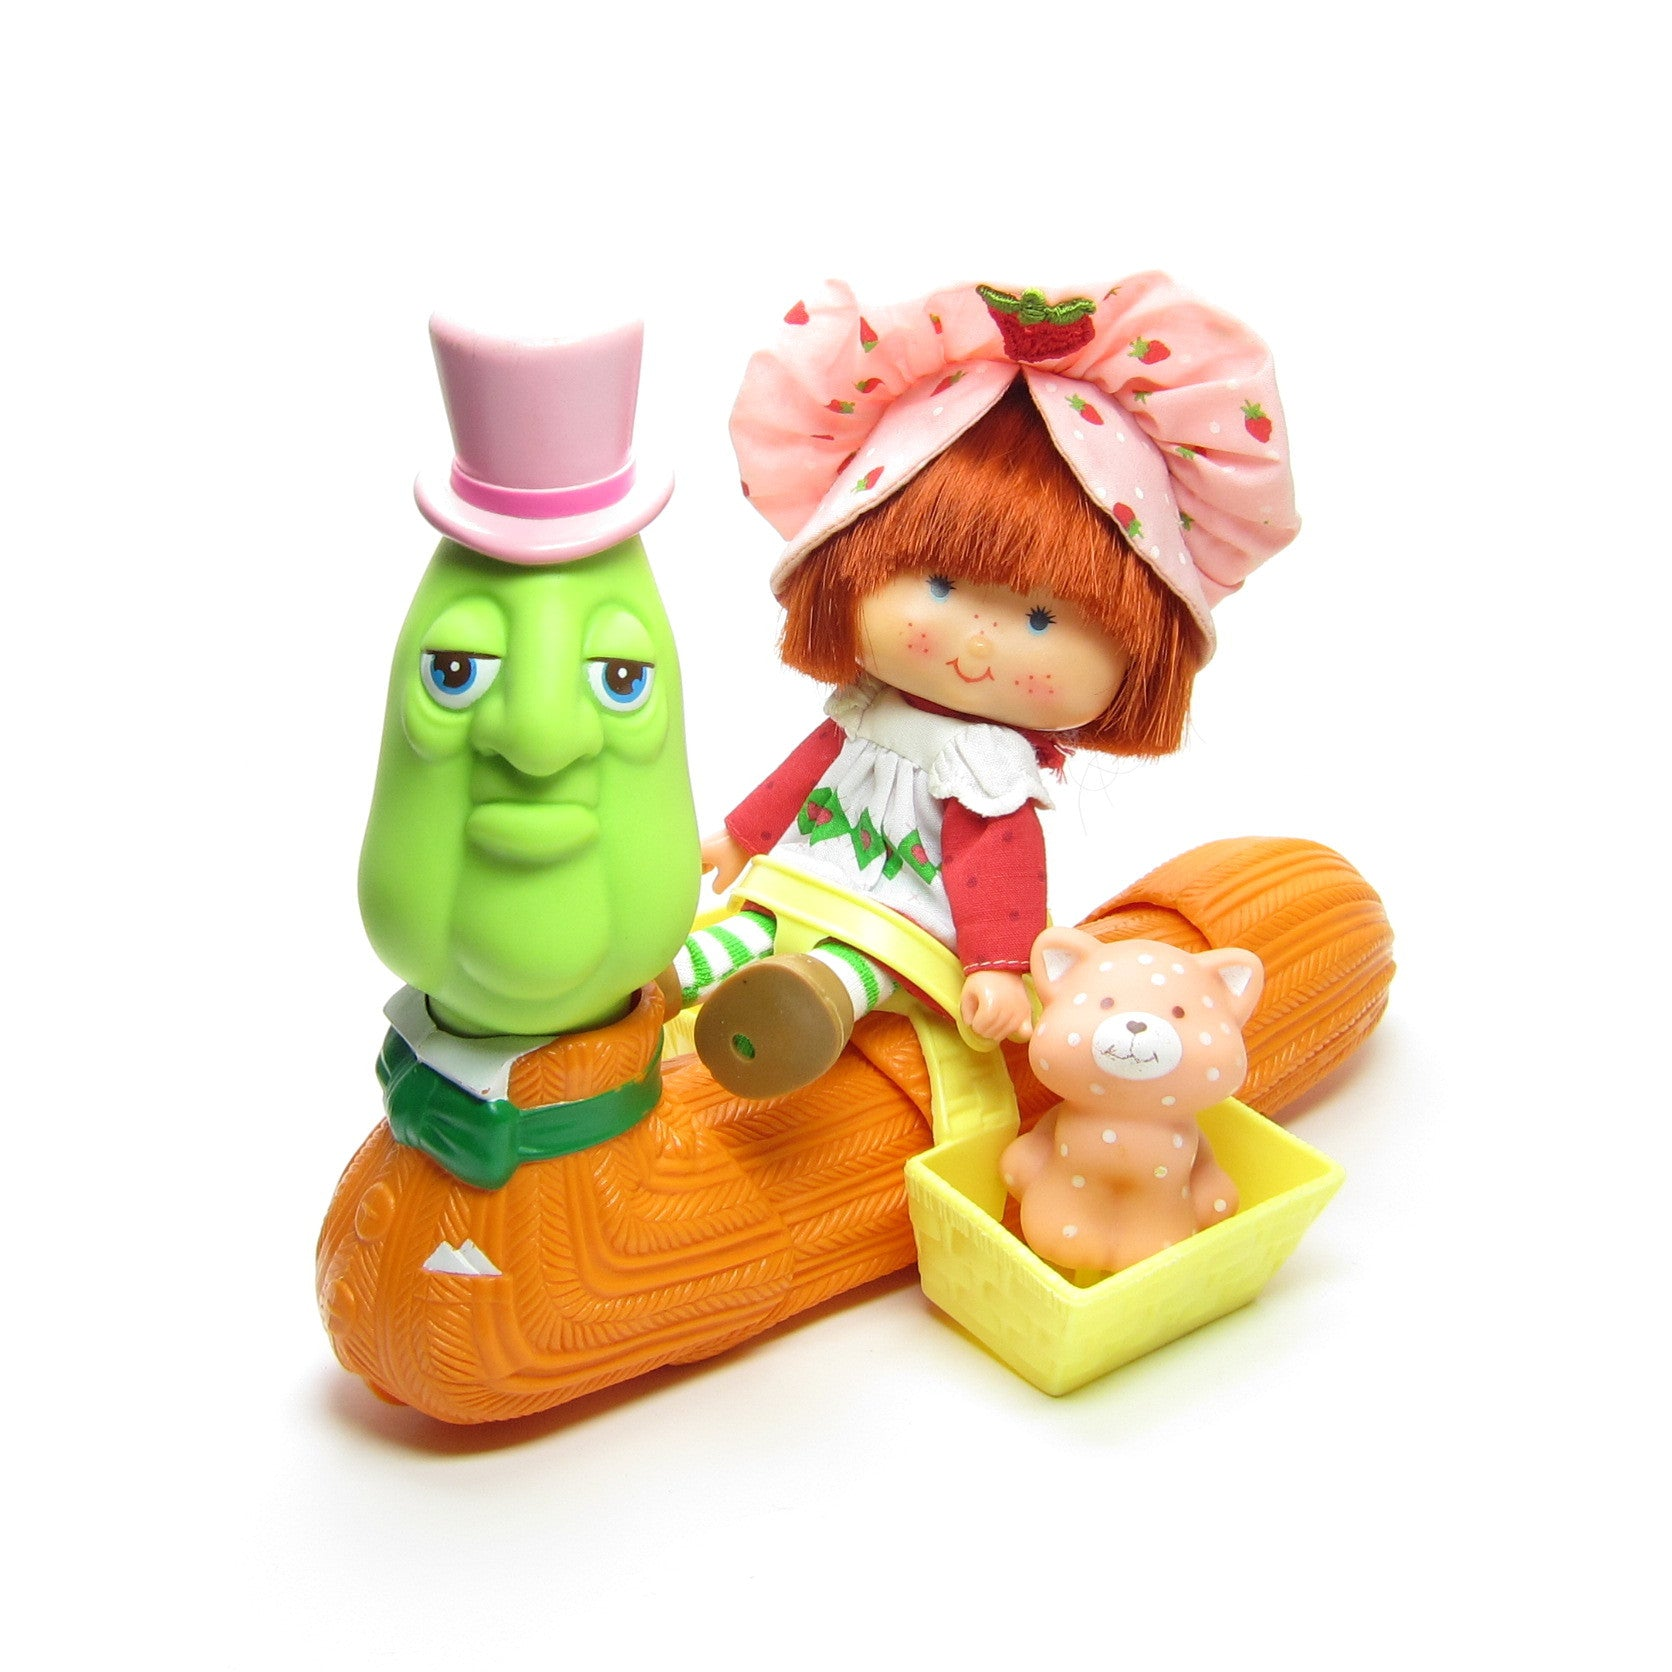 Berry Merry Worm Philbert Wormly Strawberry Shortcake toy